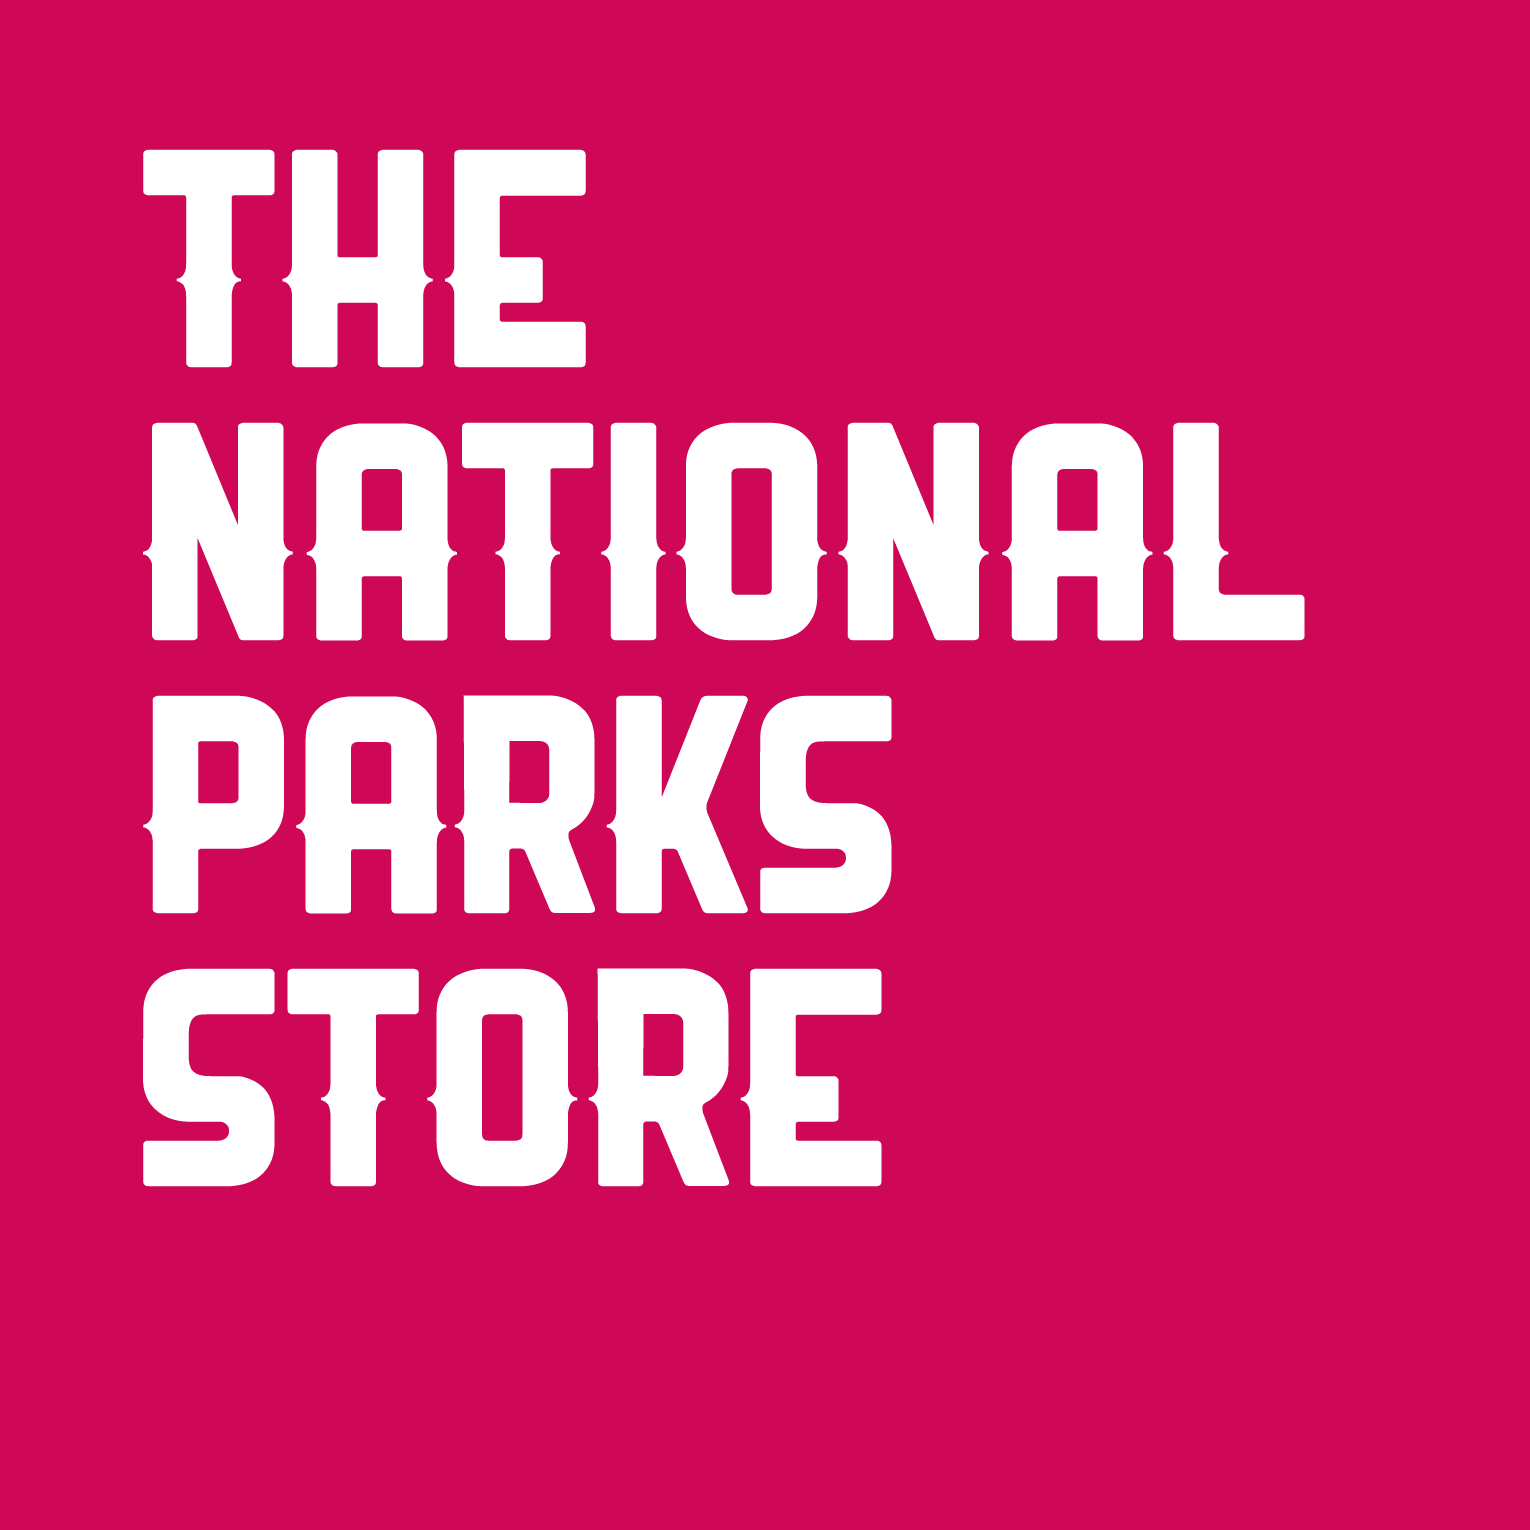 National Parks Store